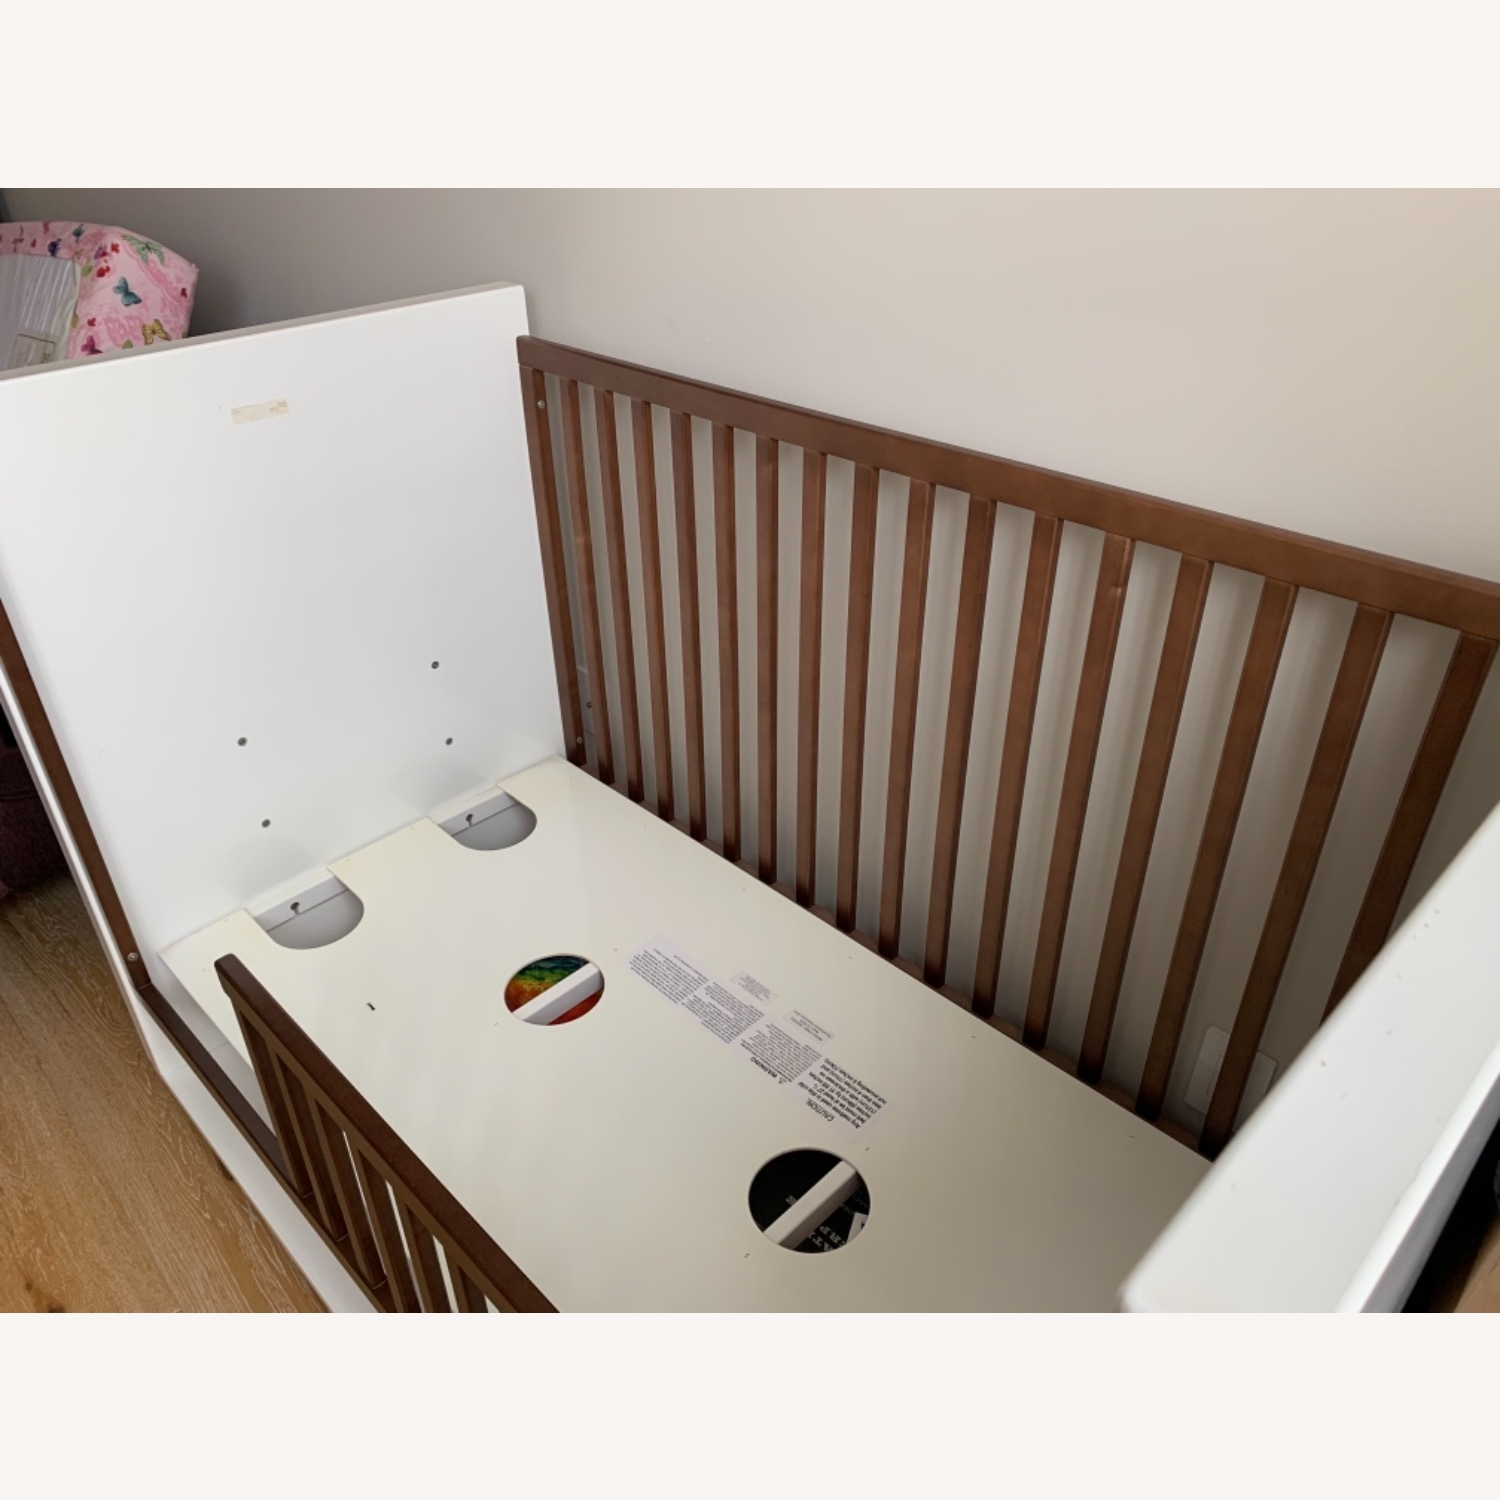 Room & Board Moda Crib and Toddler Bed - image-6